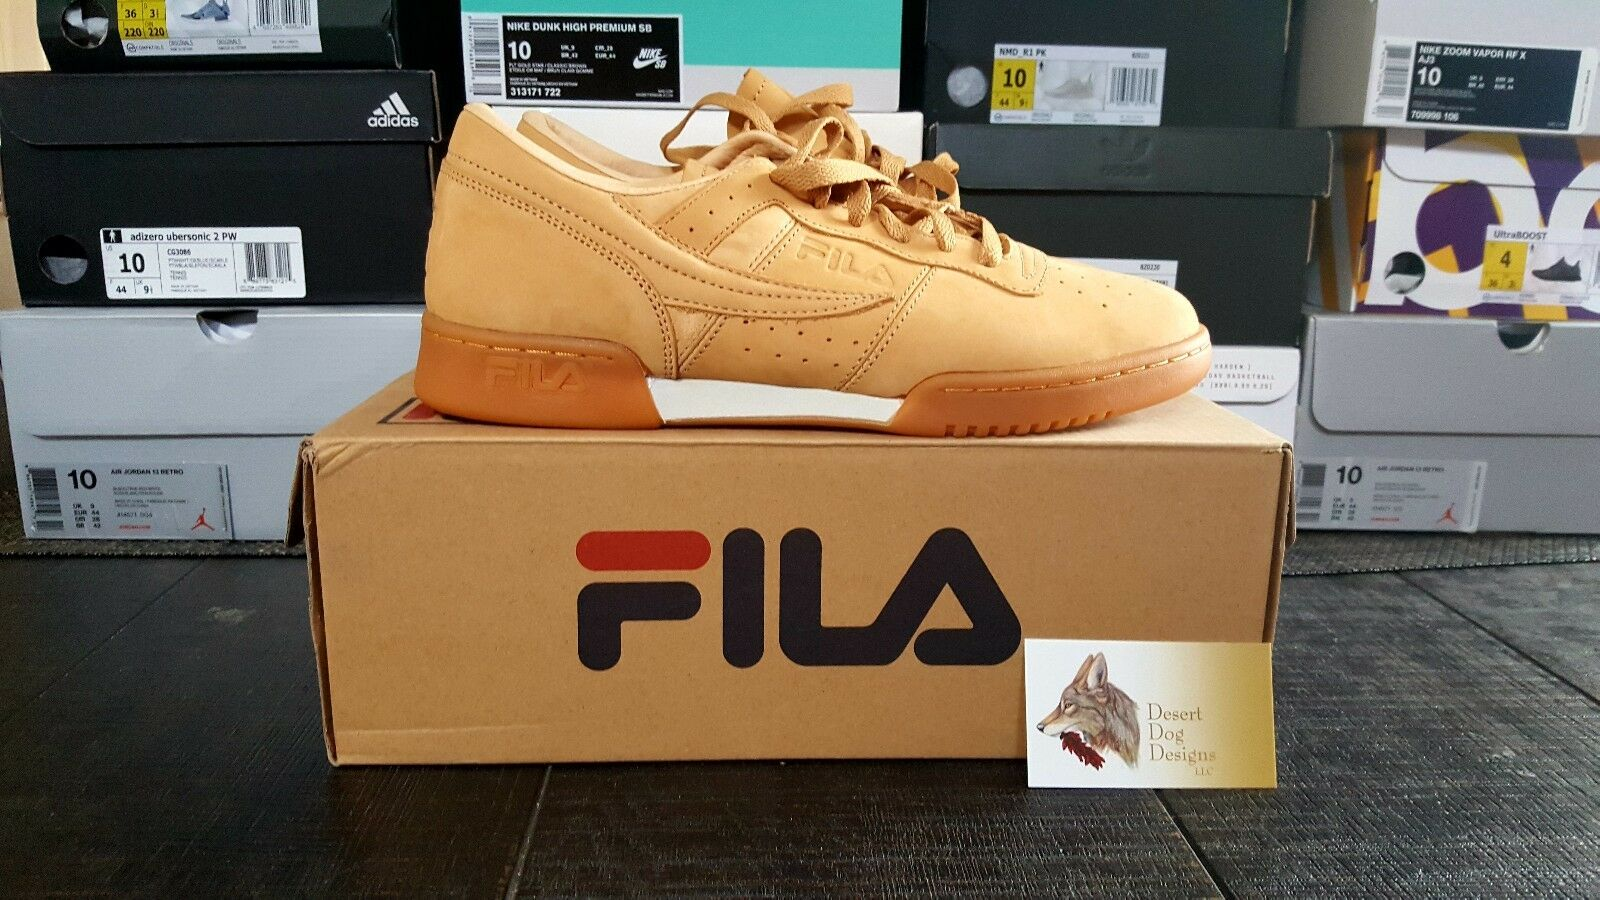 FILA ORIGINAL FITNESS LOW LUX Price reduction Comfortable and good-looking